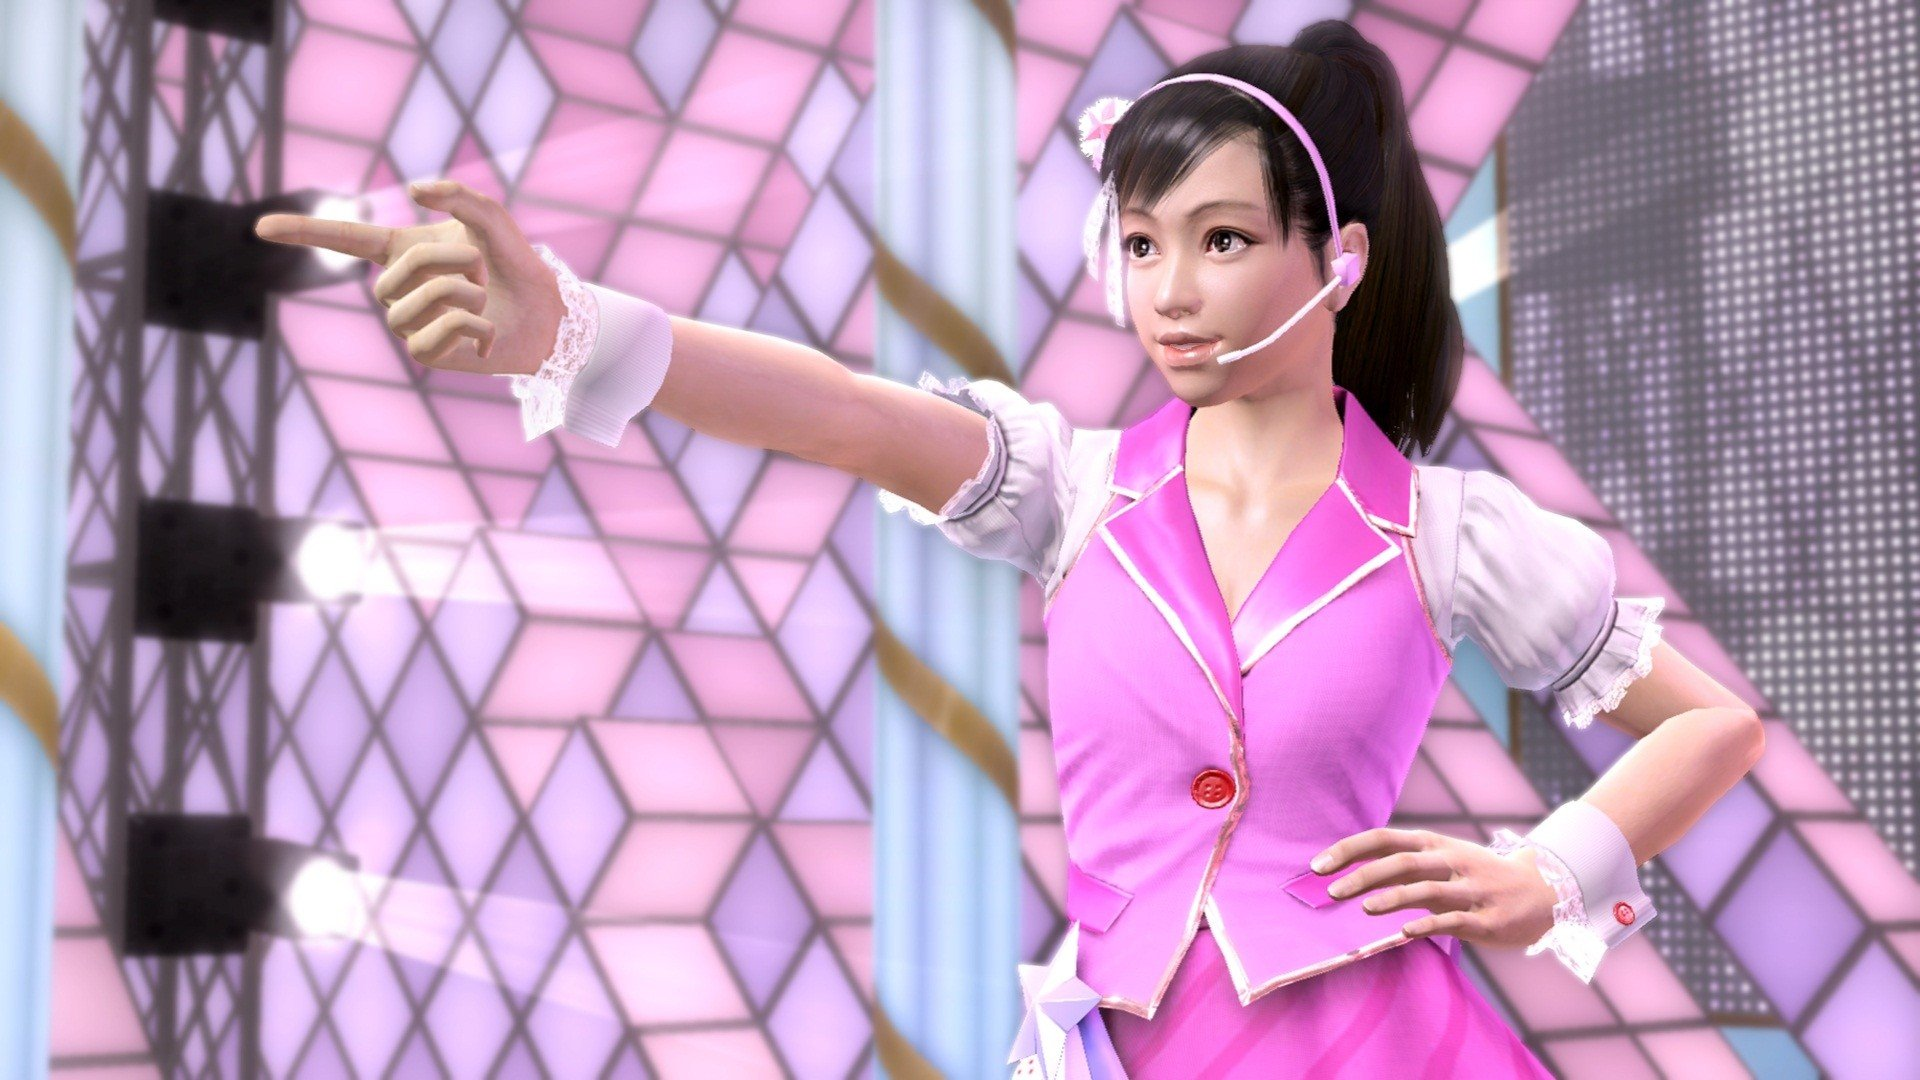 Yakuza 5 running on PS4 is a clear improvement